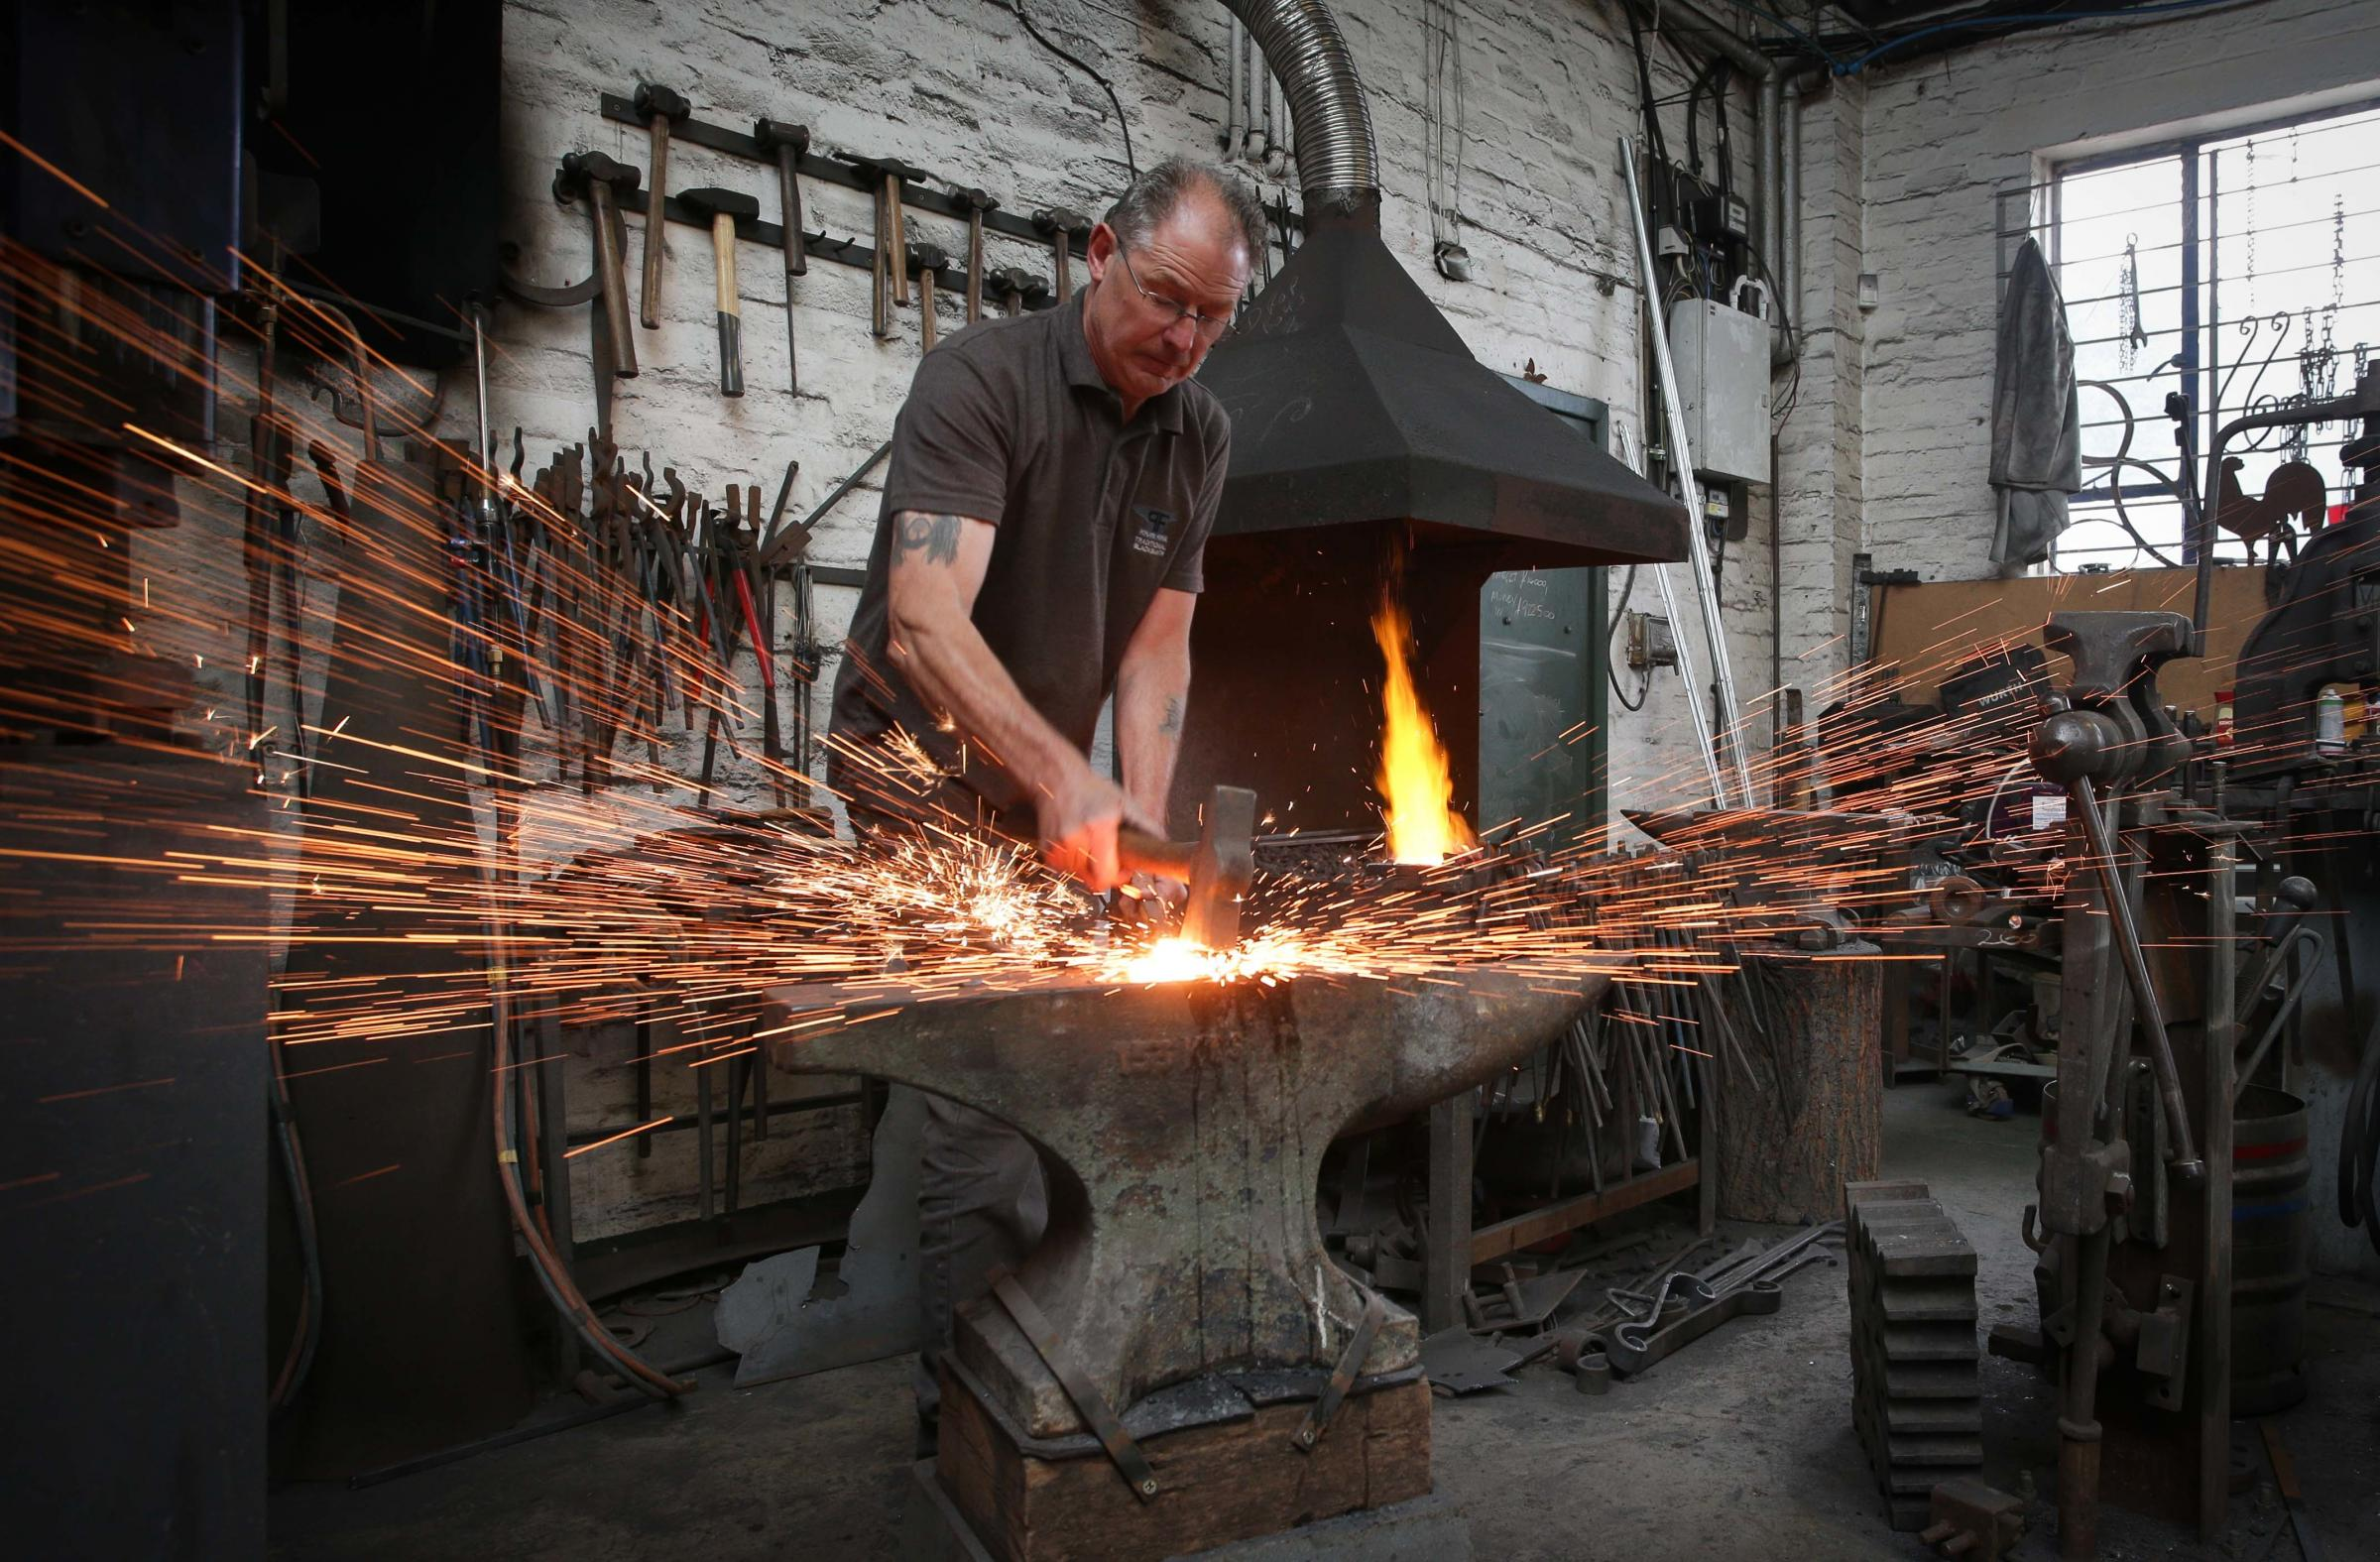 Mold ironwork firm to relocate after securing loan